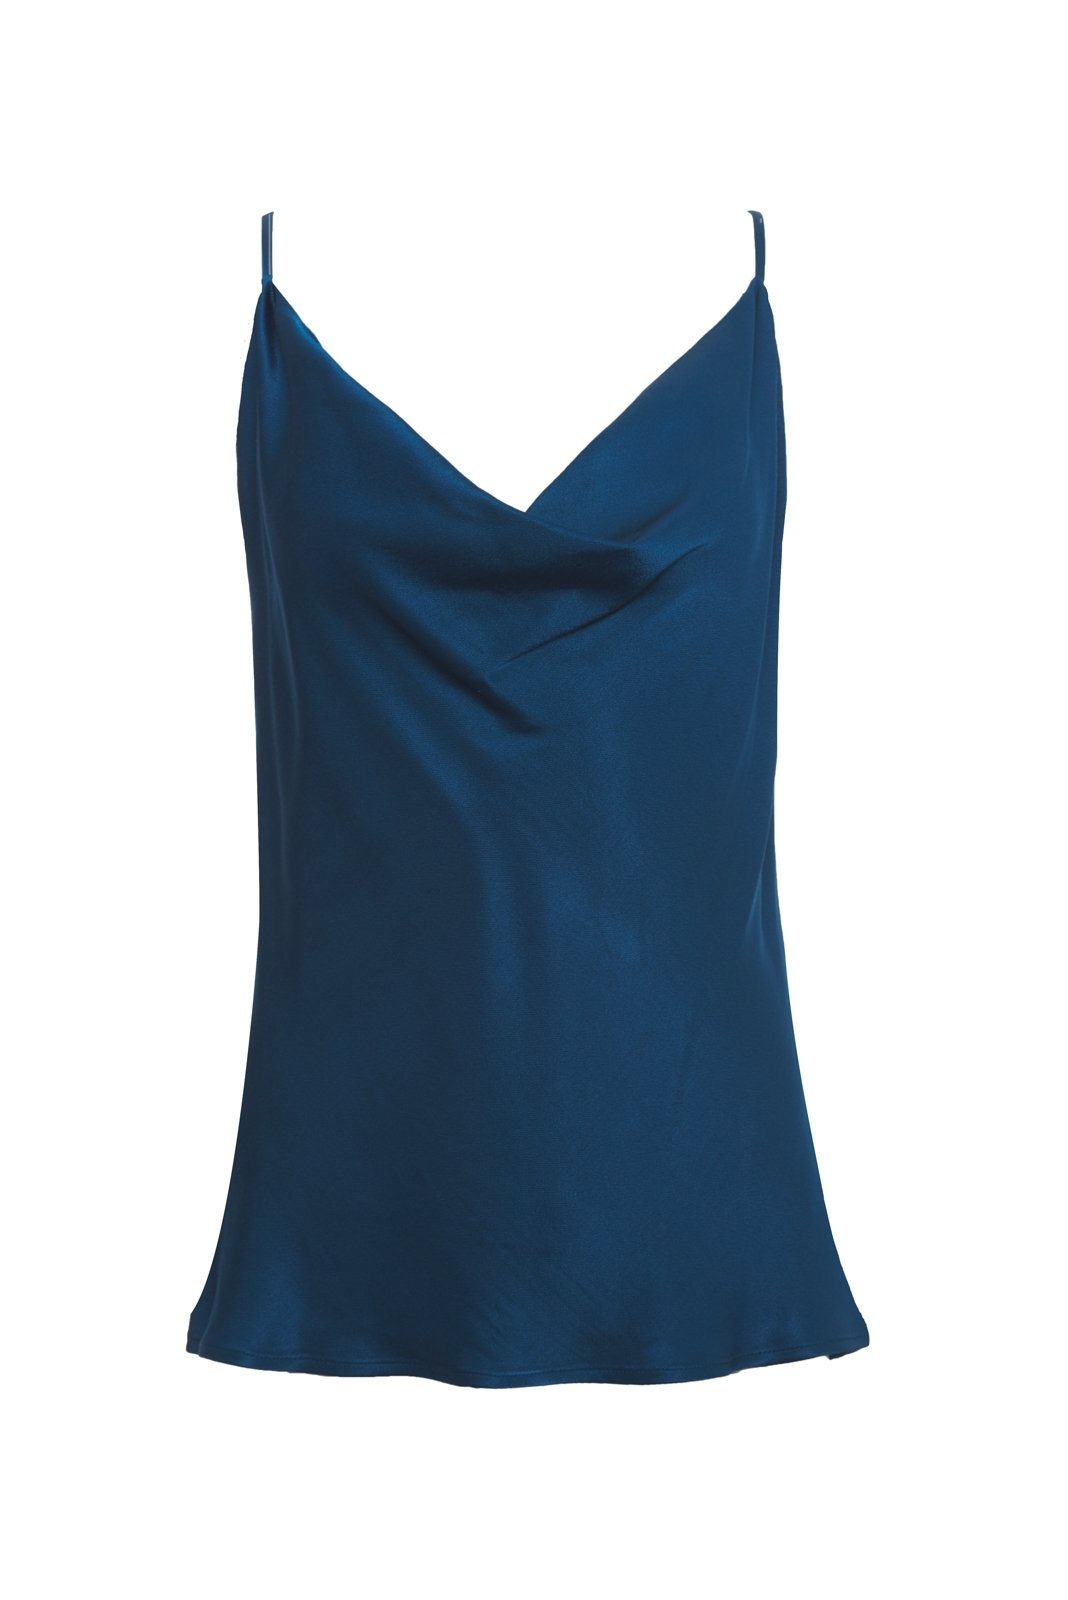 Haley Cowl Cami - Tanzanite Blue